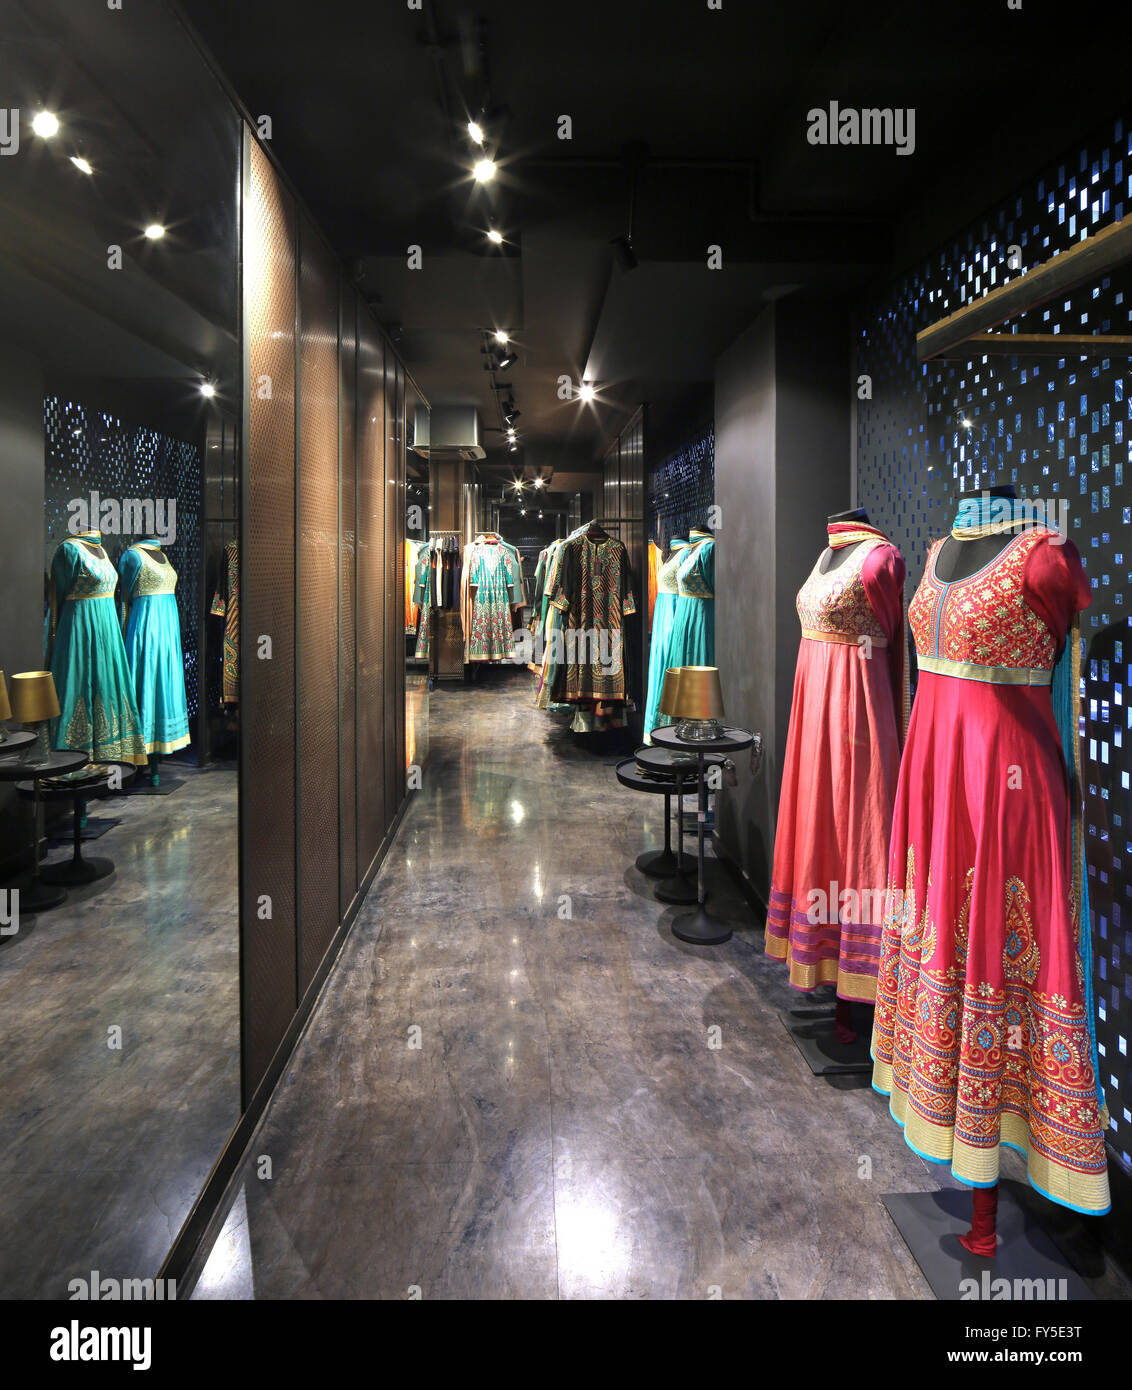 India Wedding Clothes Shop High Resolution Stock Photography And Images Alamy